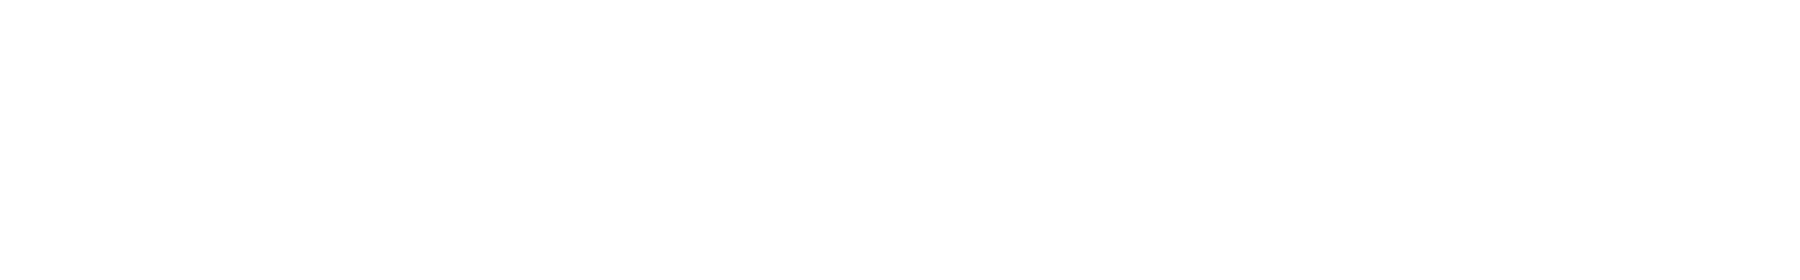 snare 07